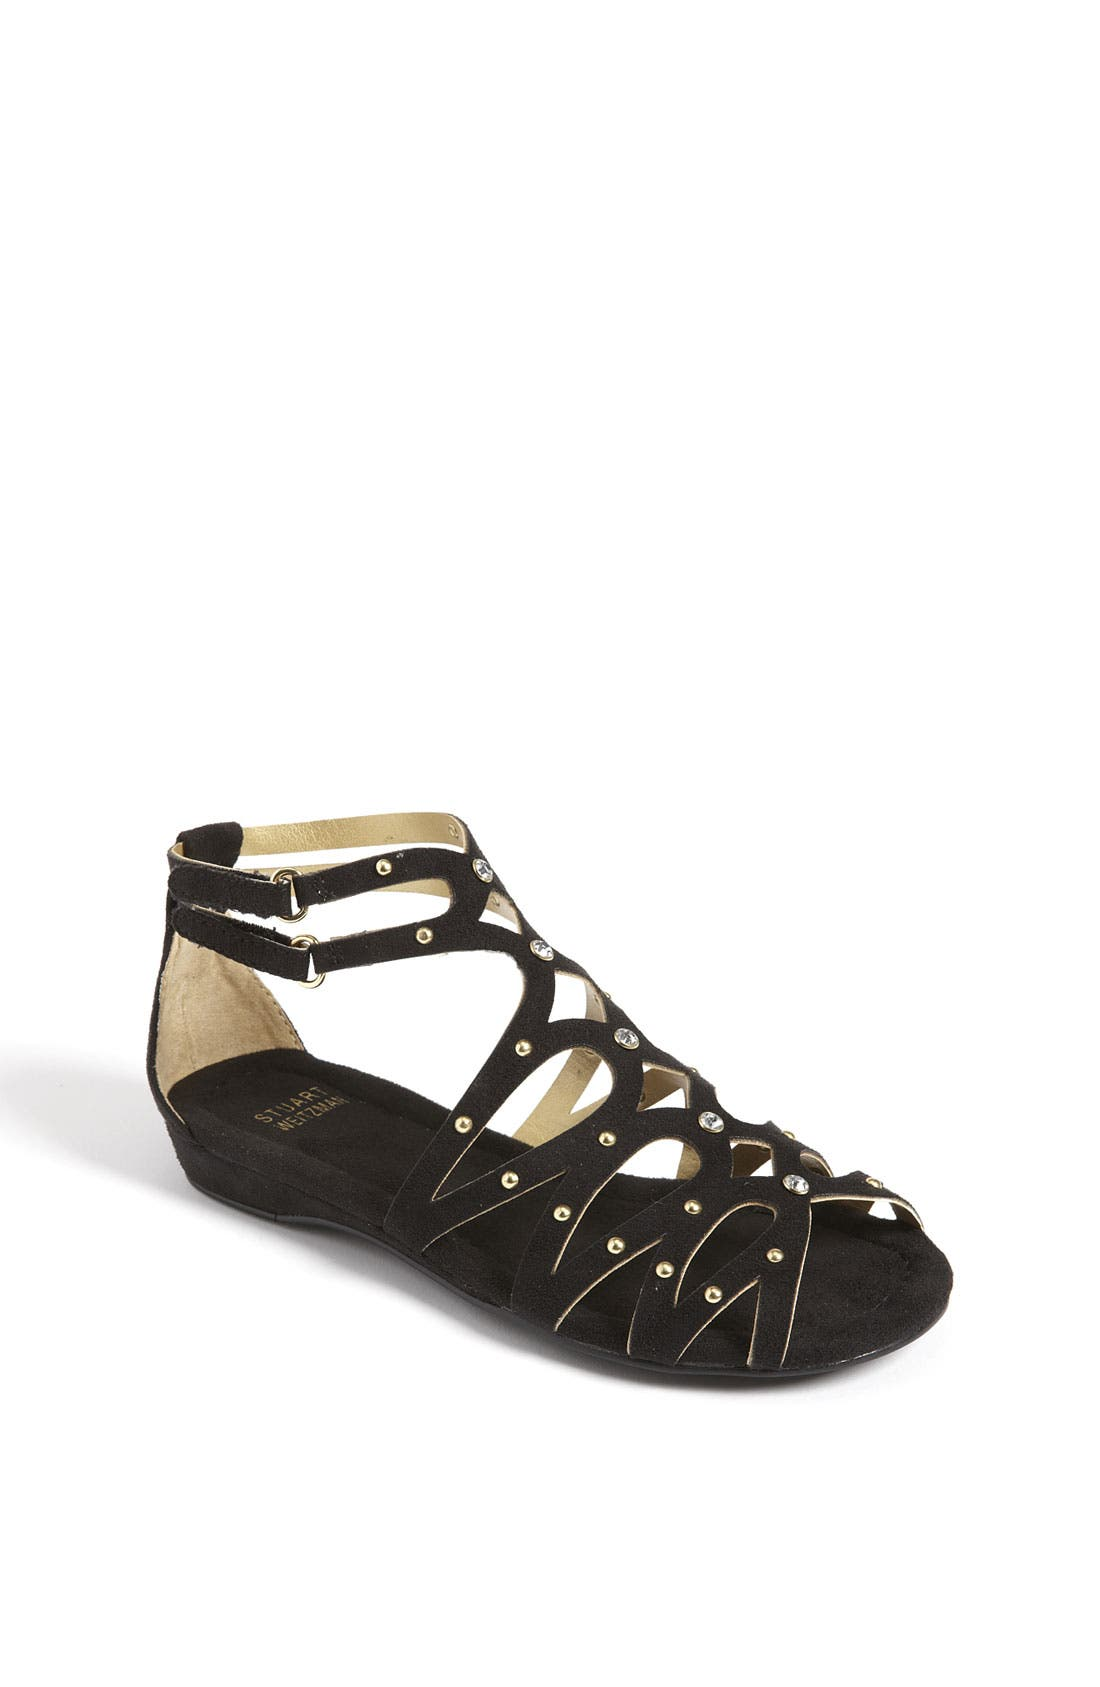 Alternate Image 1 Selected - Stuart Weitzman 'Goldigger' Sandal (Toddler, Little Kid & Big Kid)